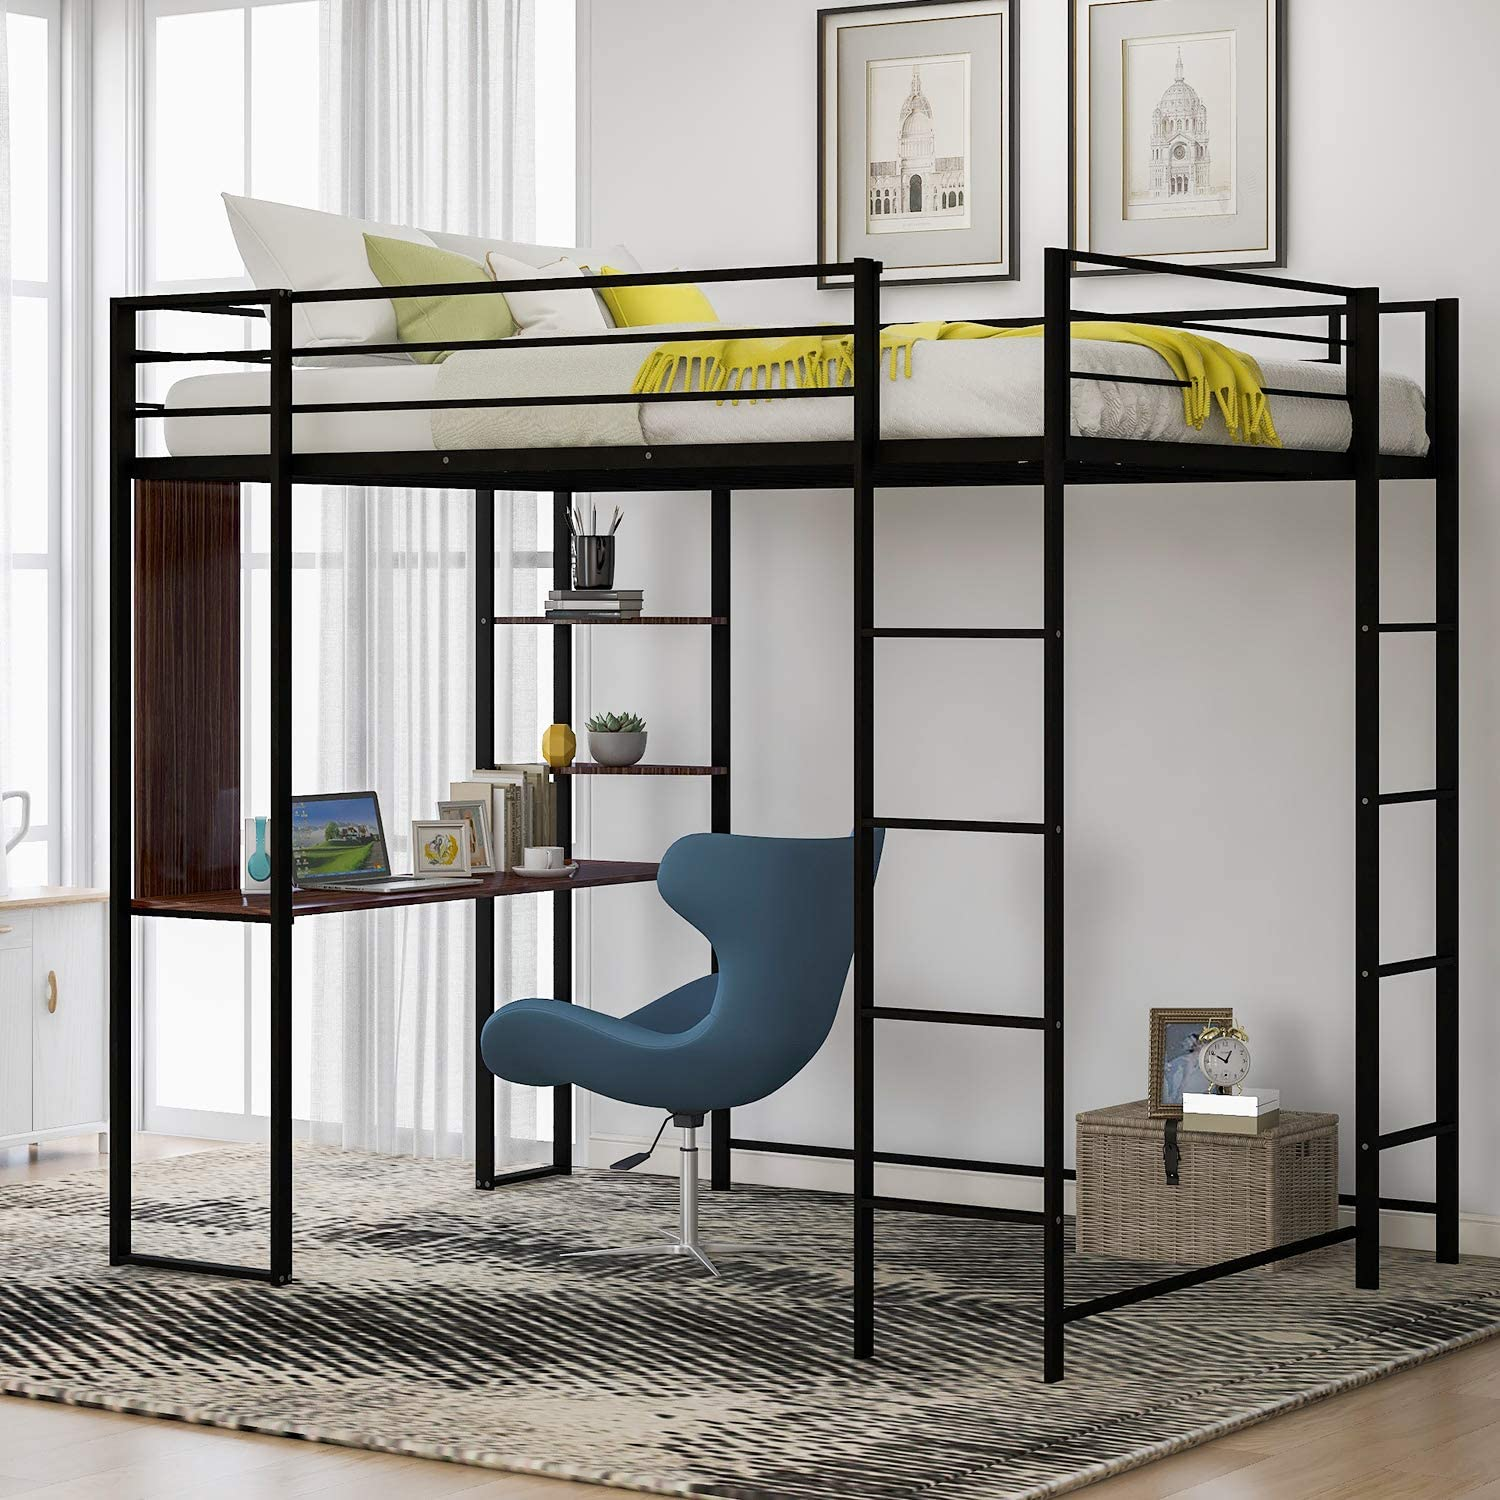 Metal Loft Bed with 2 Ladder and Desk, Storage Shelf, Full-Length guardrail, Space-Saving Design, No Box Spring Needed (Full Black)